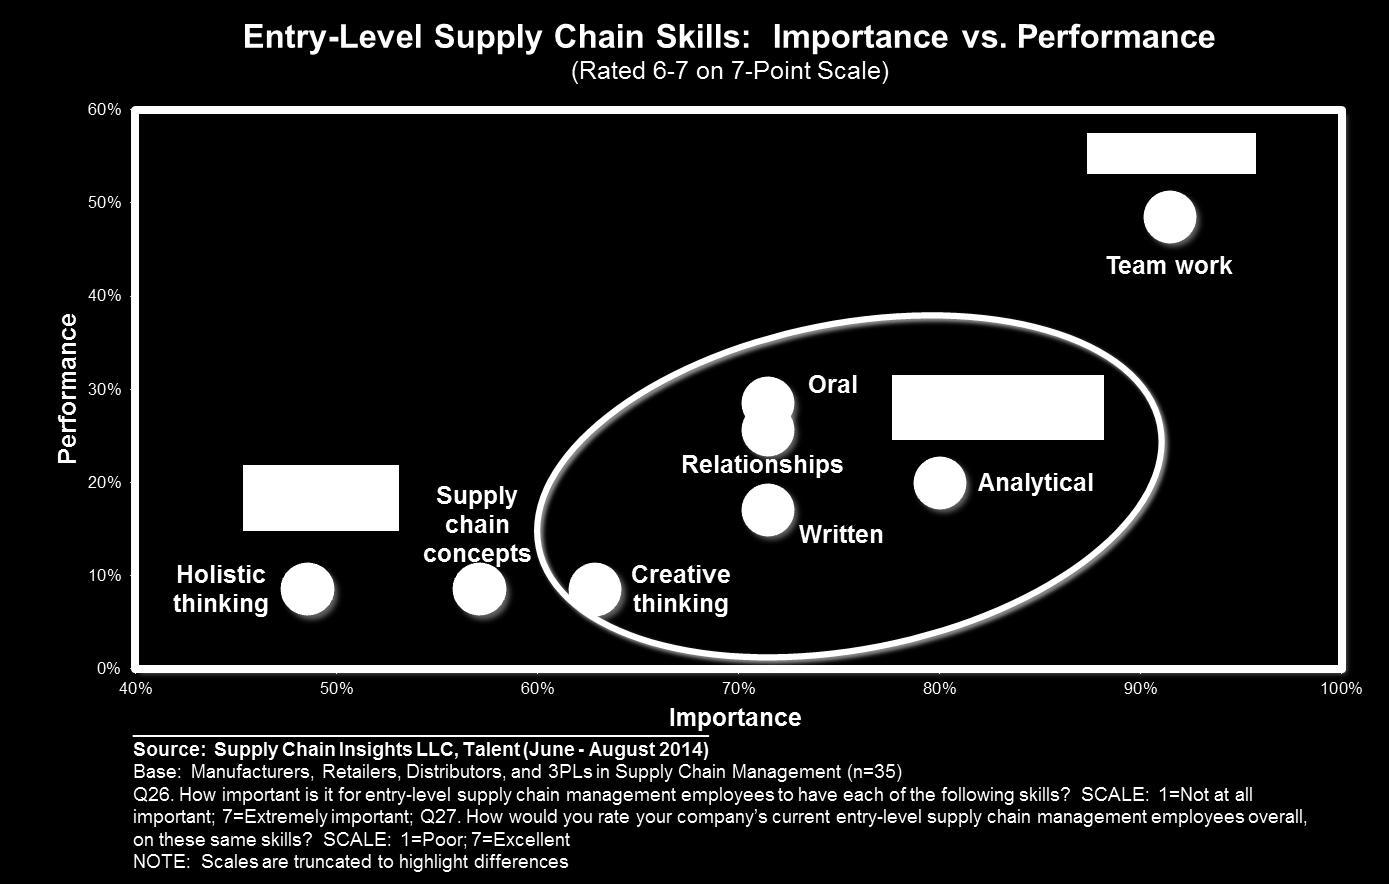 employees are coming from business school supply chain programs.